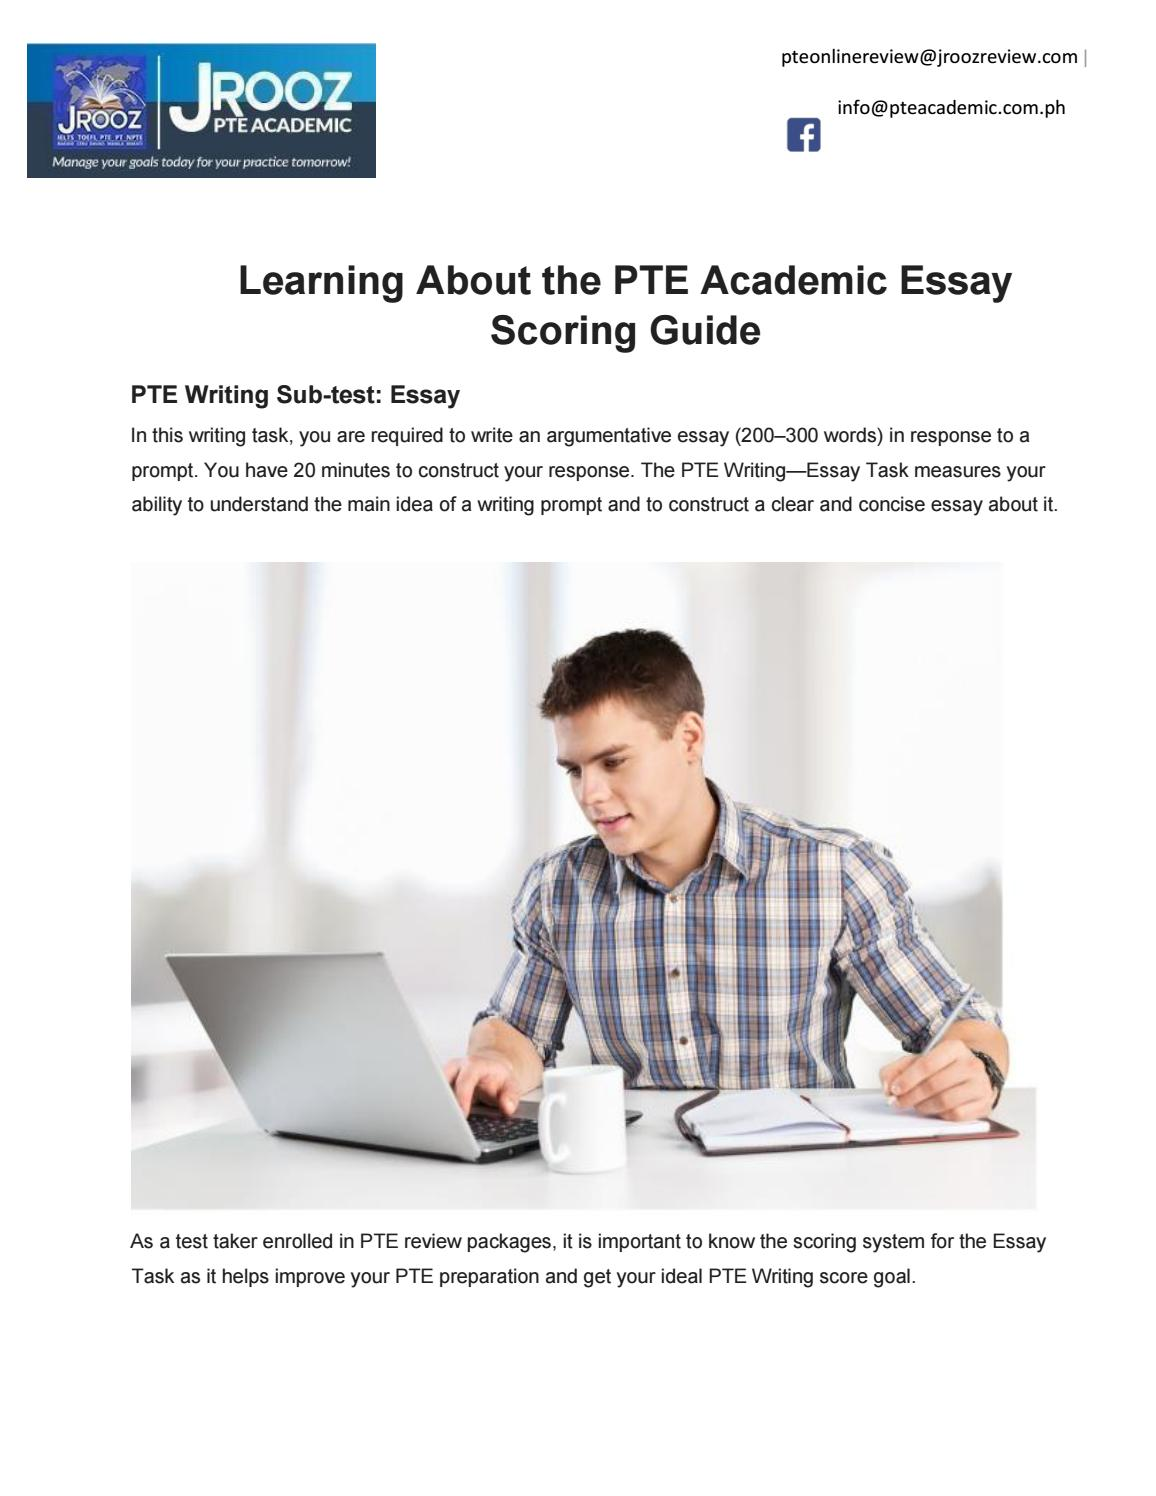 Learning About the PTE Academic Essay Scoring Guide by